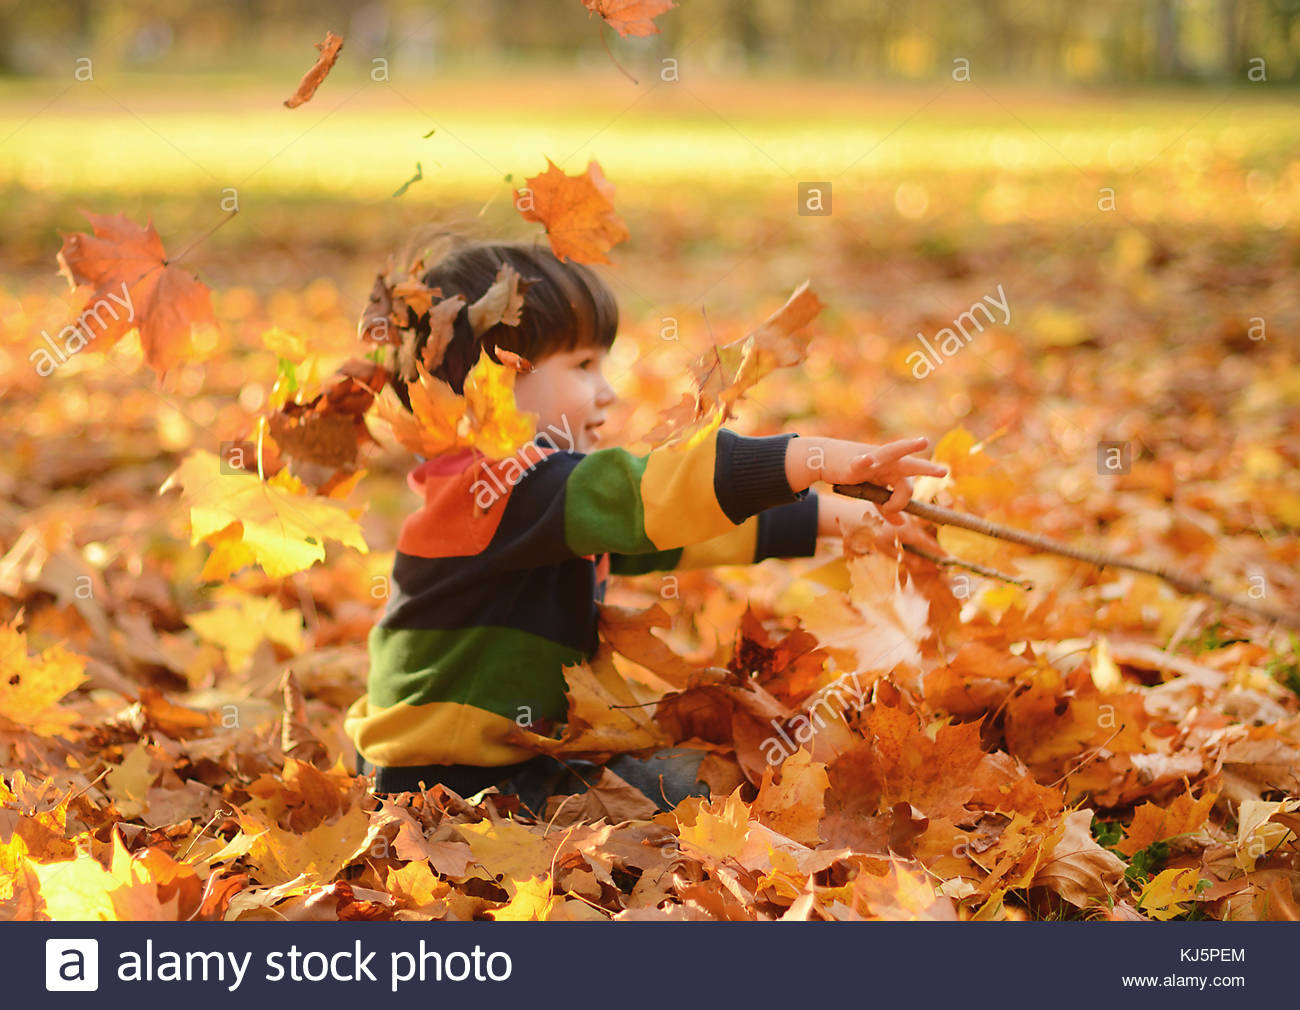 Toddler playing with leafs - Stock Image